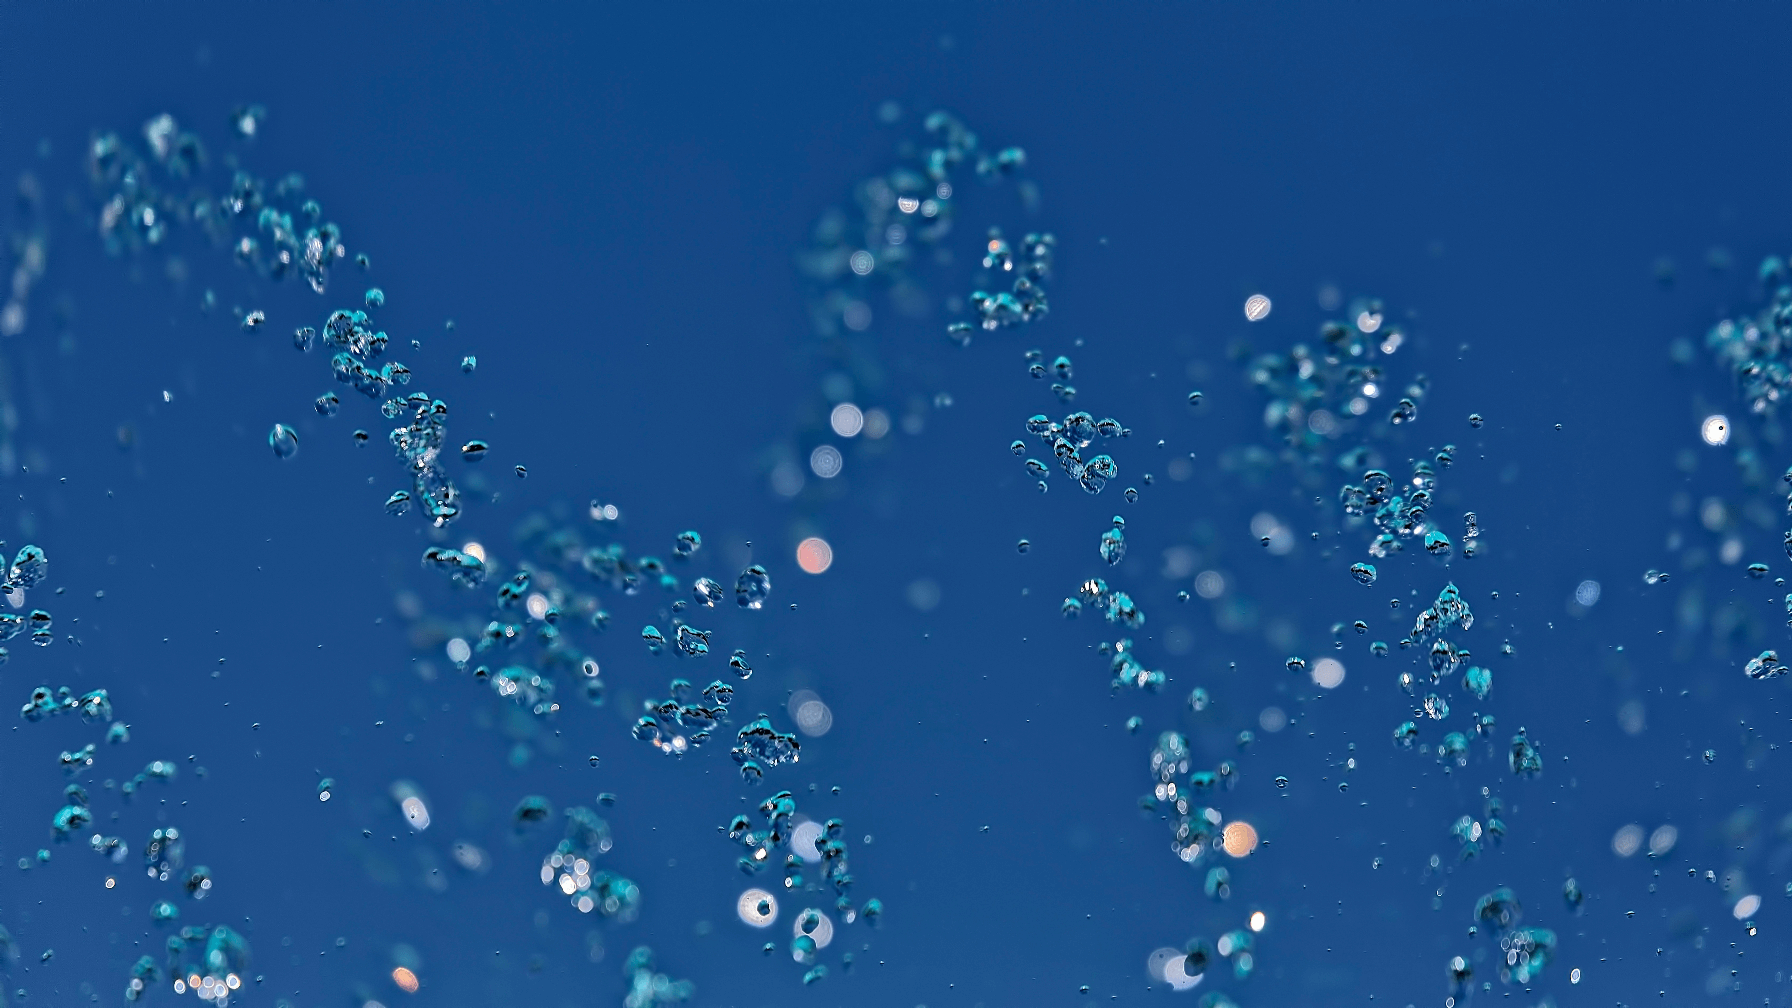 Dancing water drops